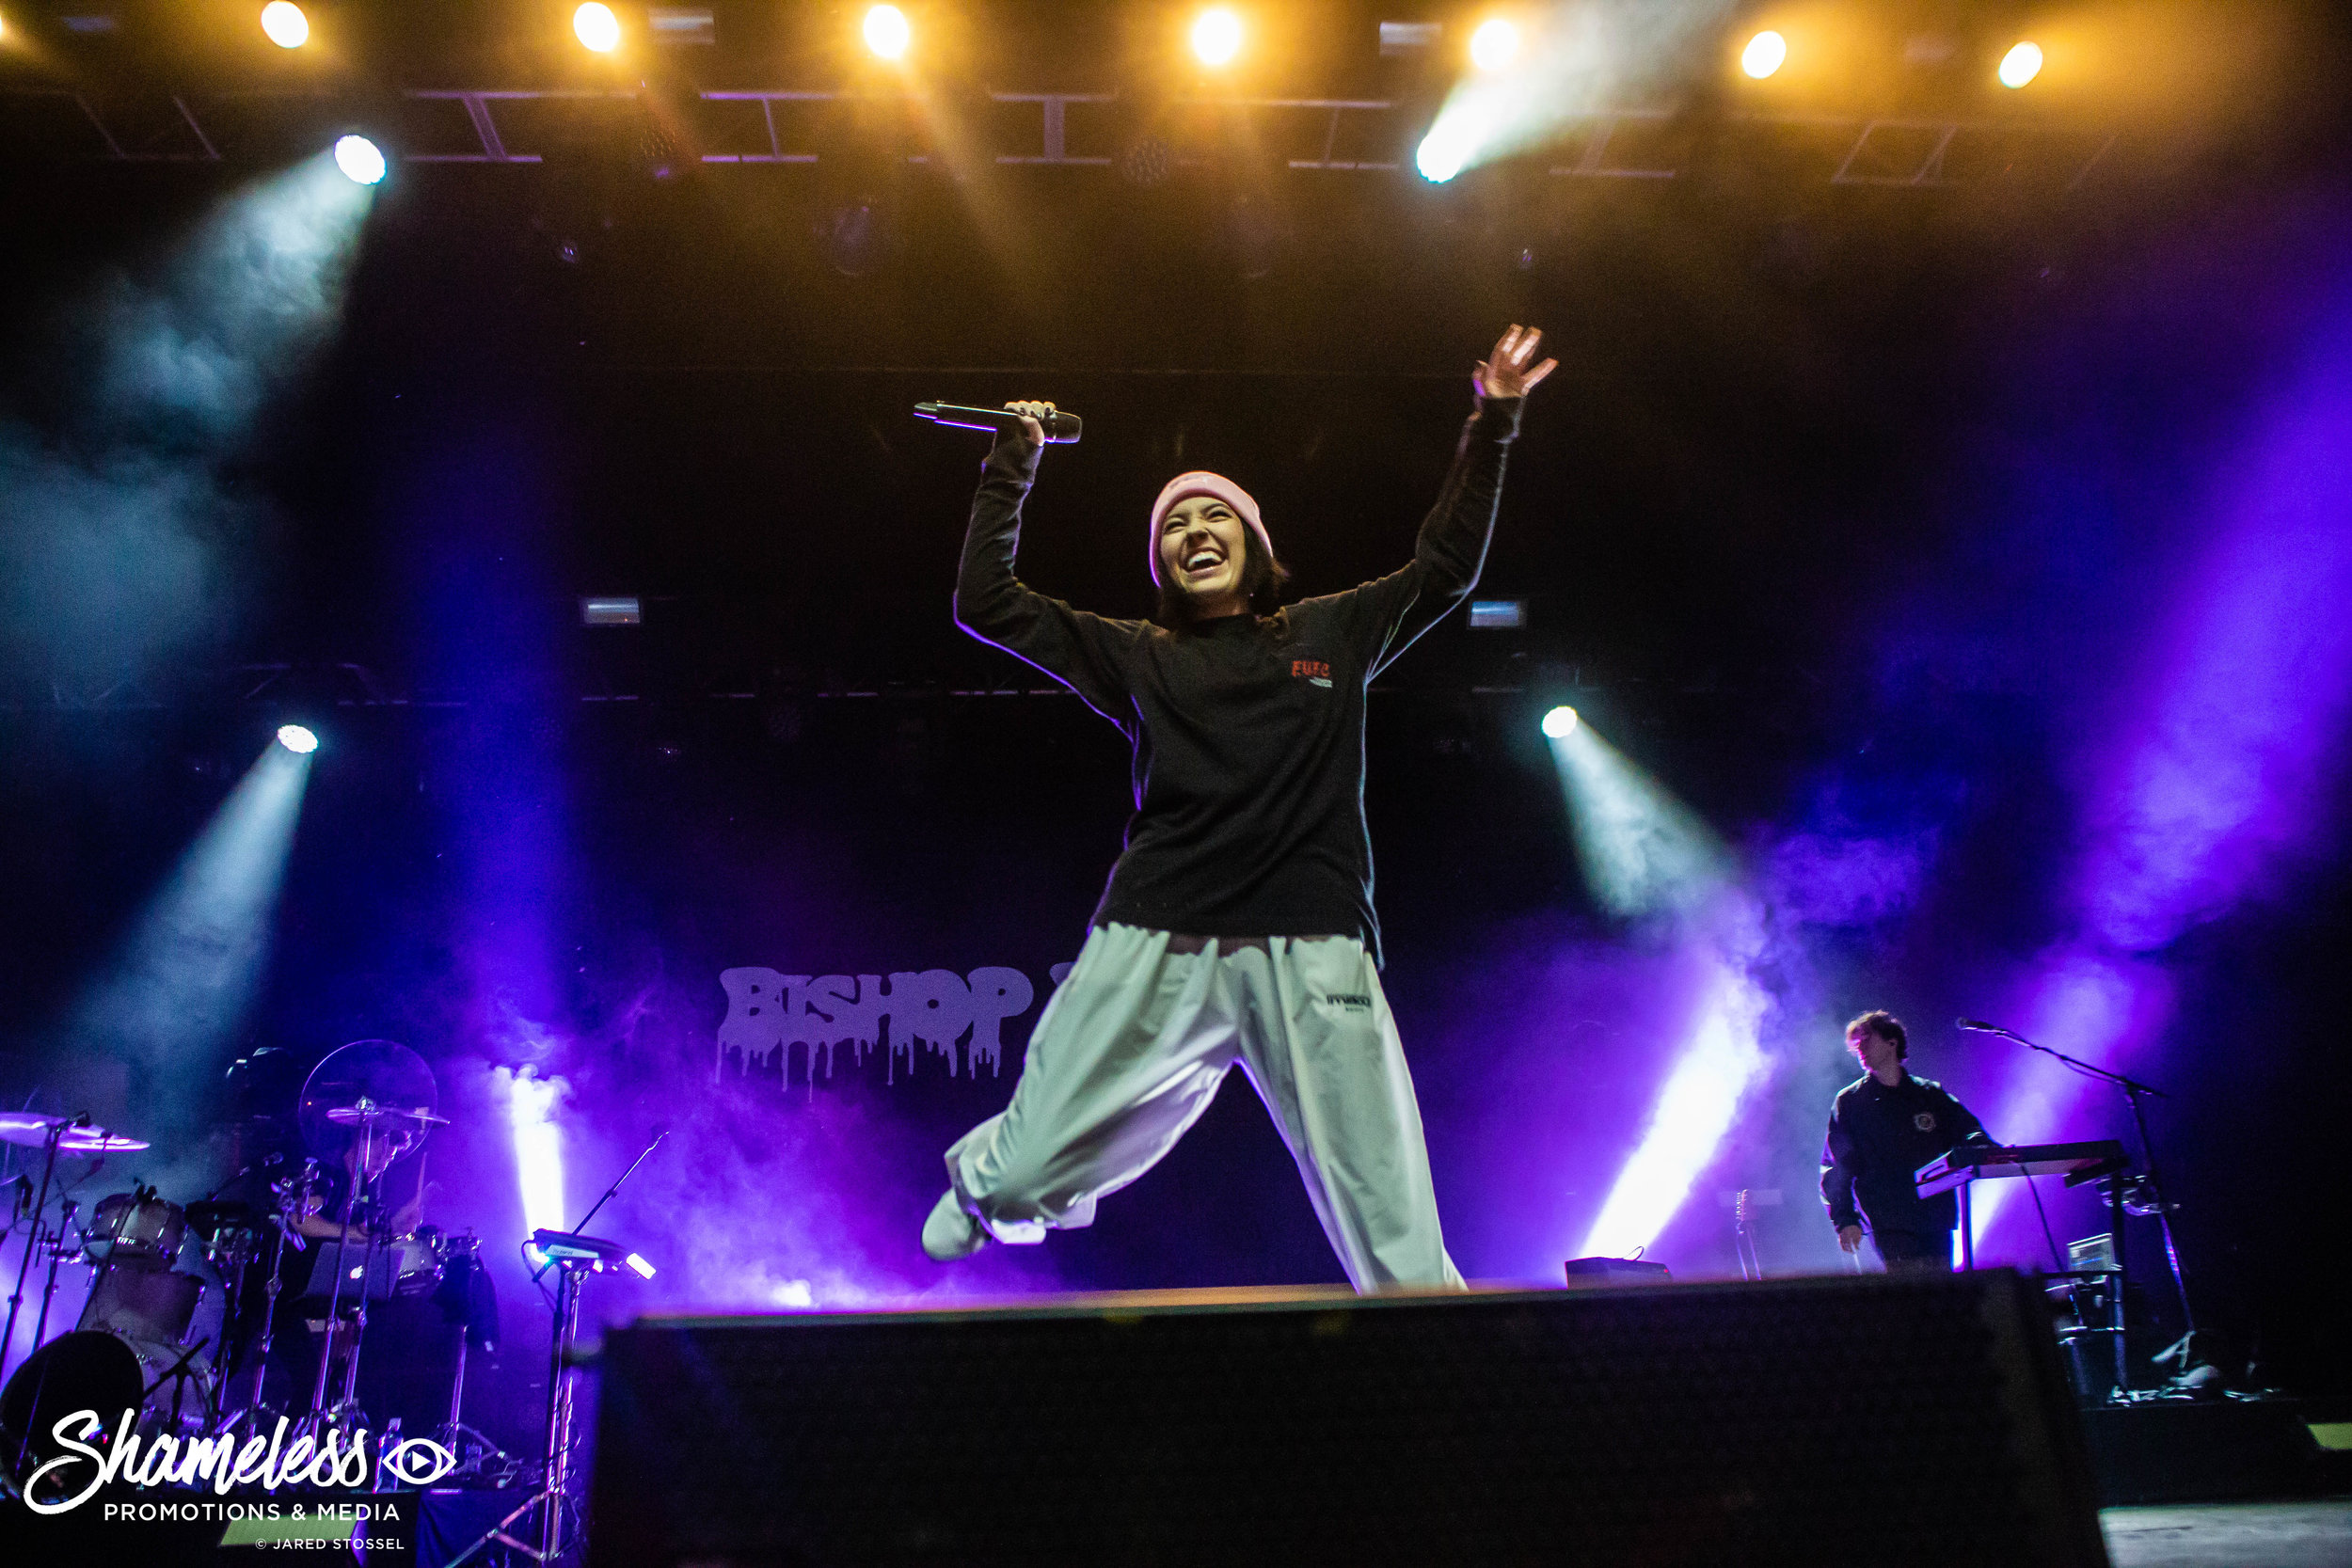 Bishop Briggs @ The Fox Theater: September 2018